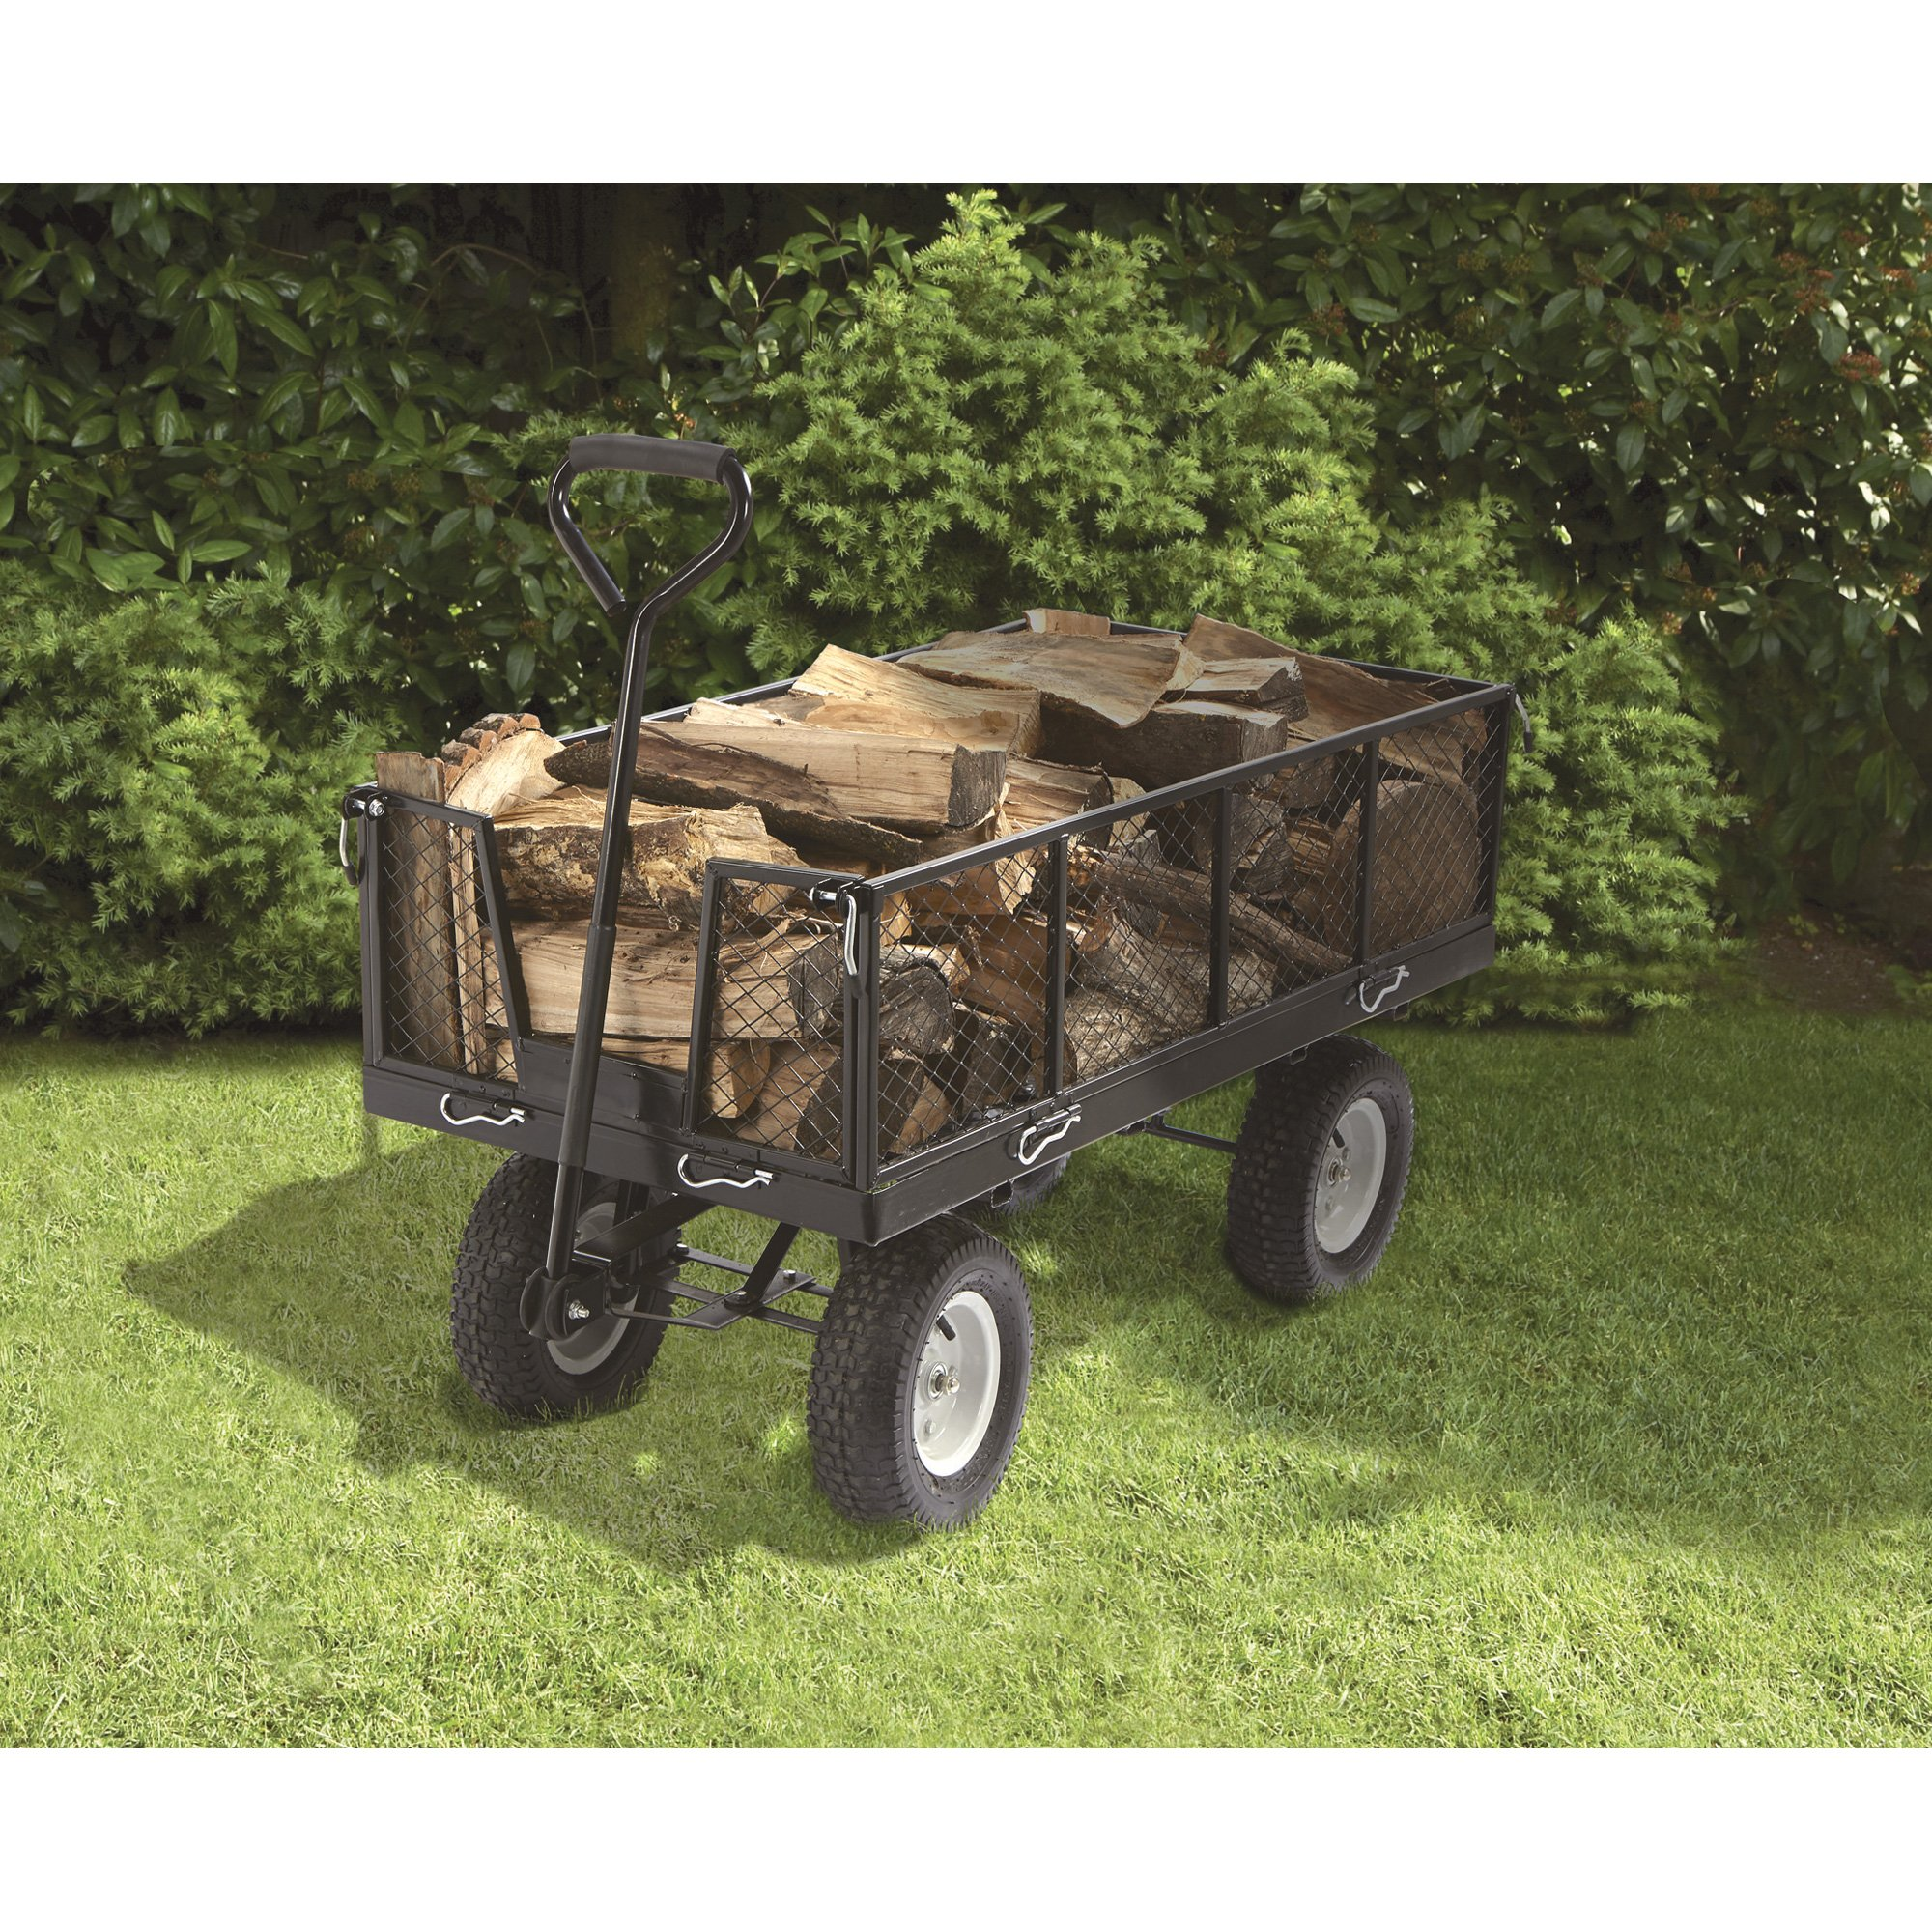 Strongway Jumbo Wagon - 48in.L x 24in.W, 1,400-Lb. Capacity by Strongway